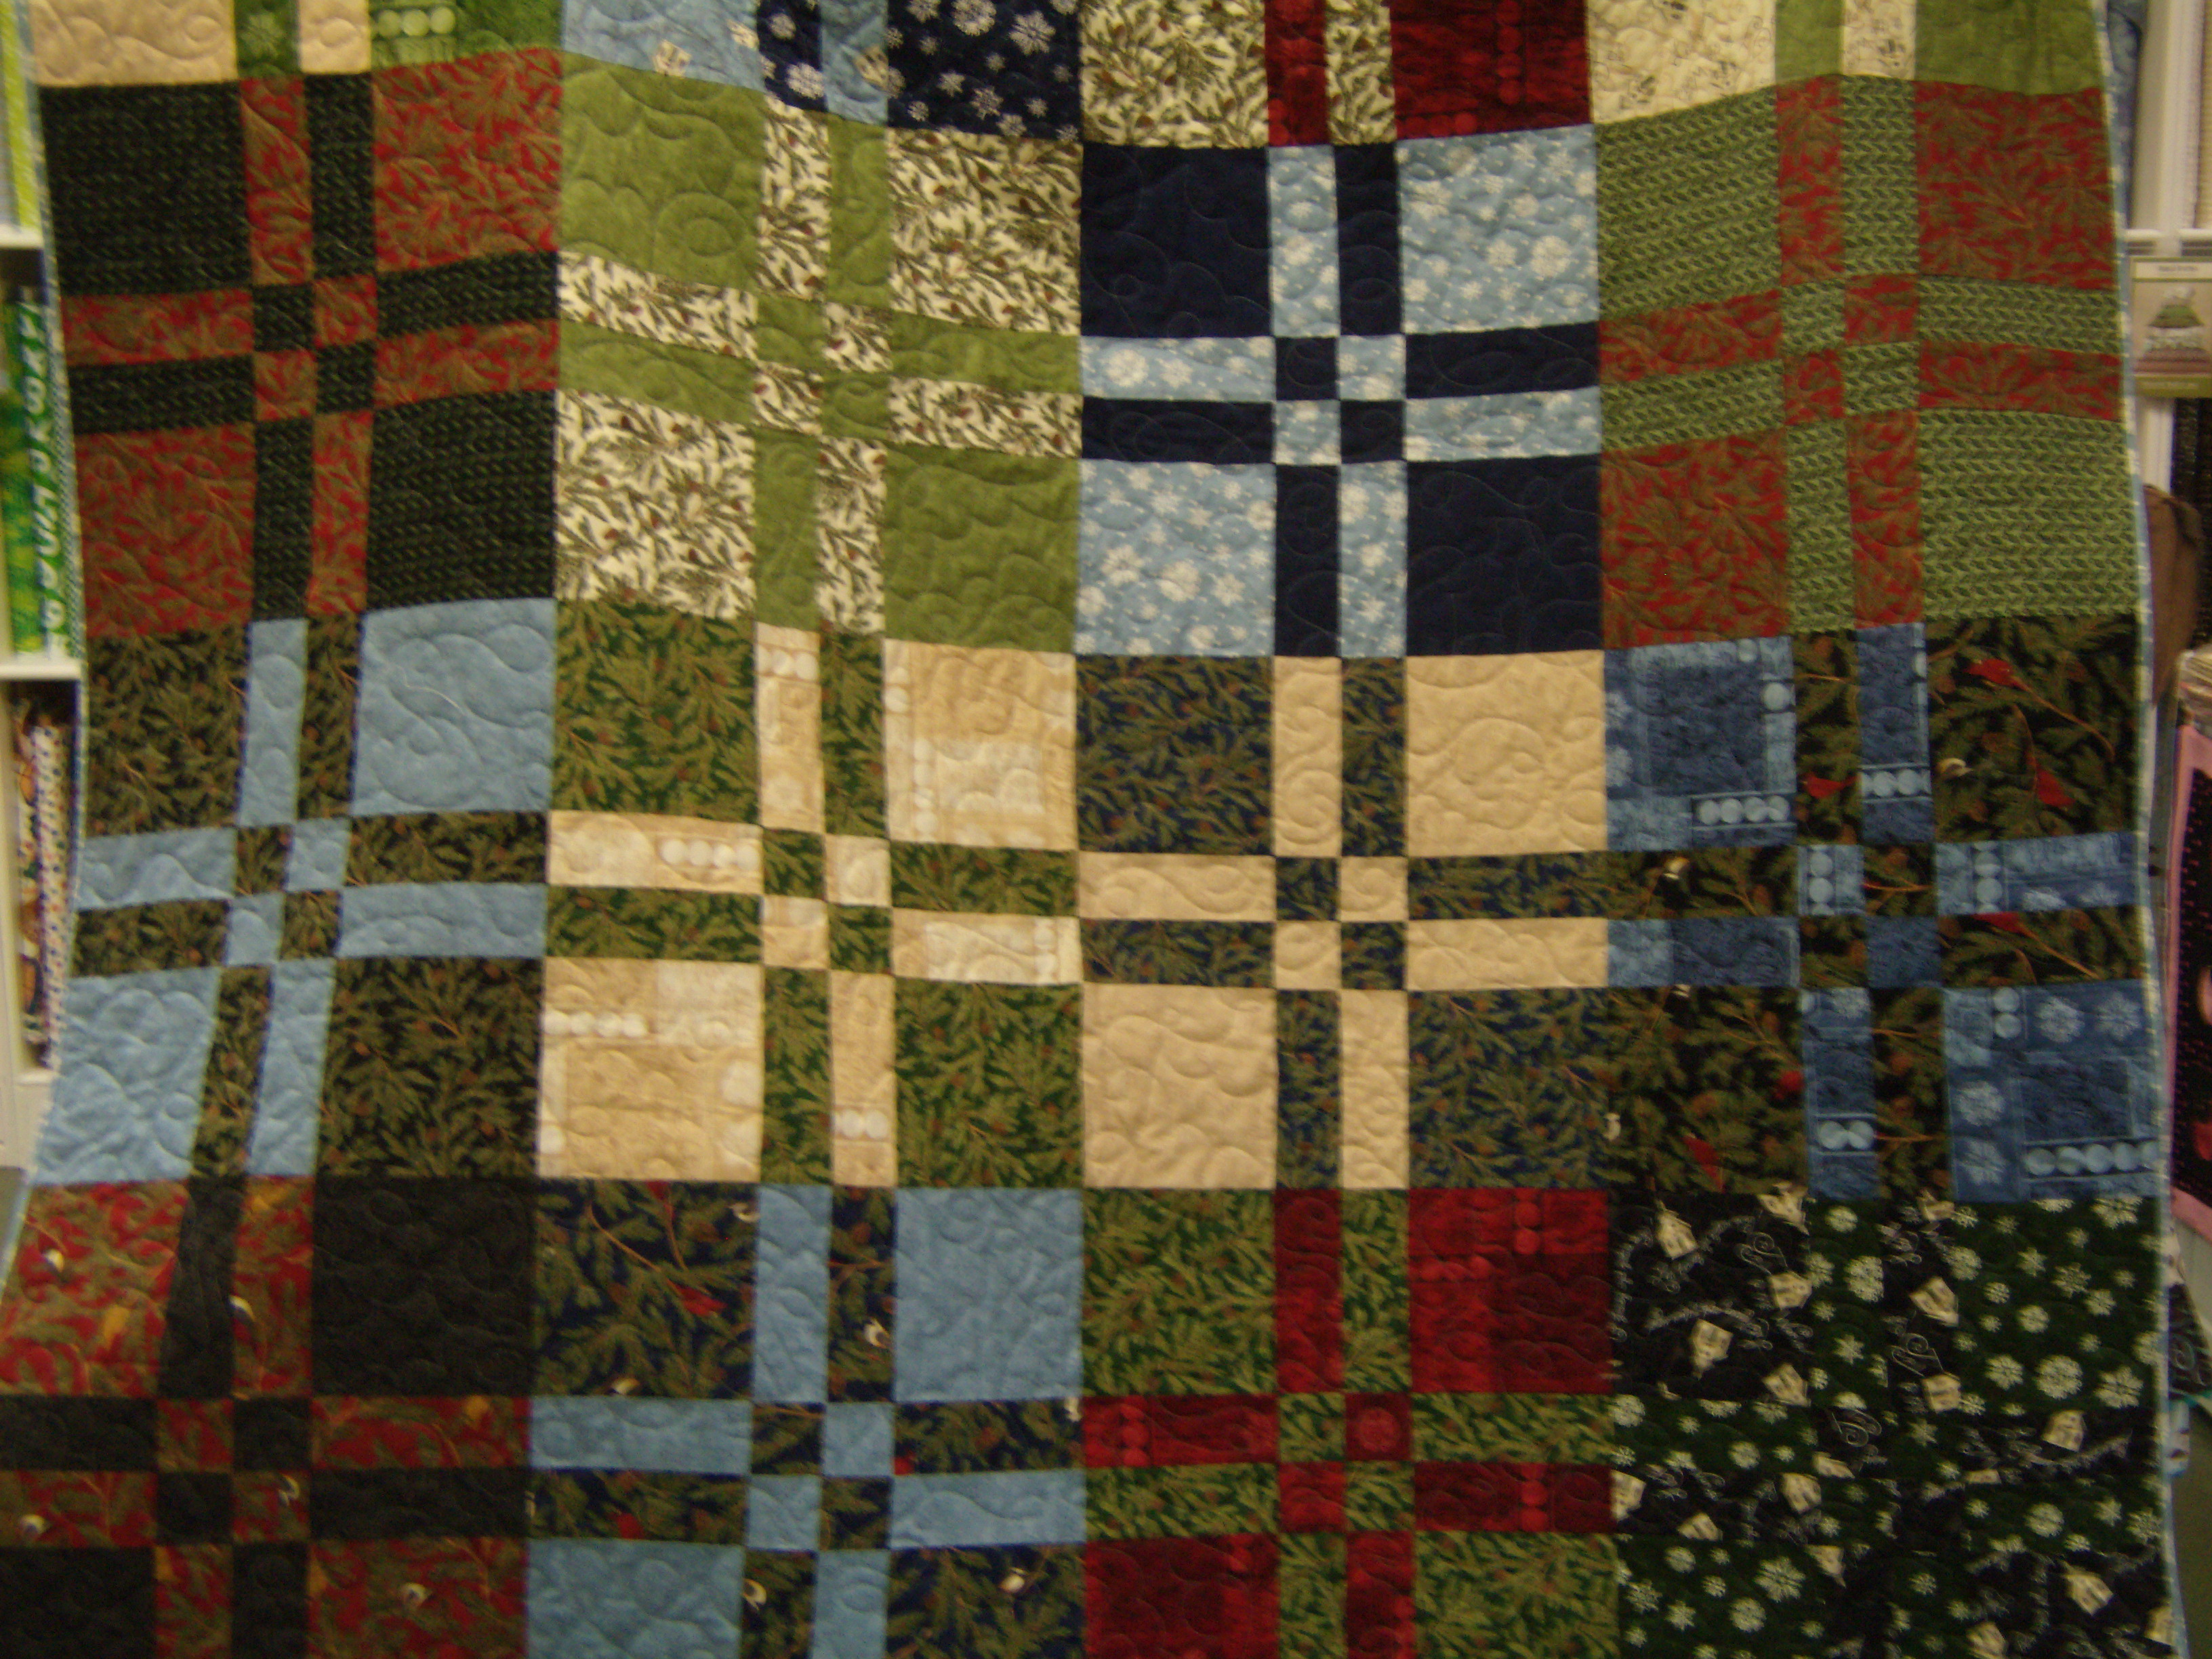 Disappearing Four Patch Quilt | MY HERITAGE FABRICS : disappearing patch quilt - Adamdwight.com